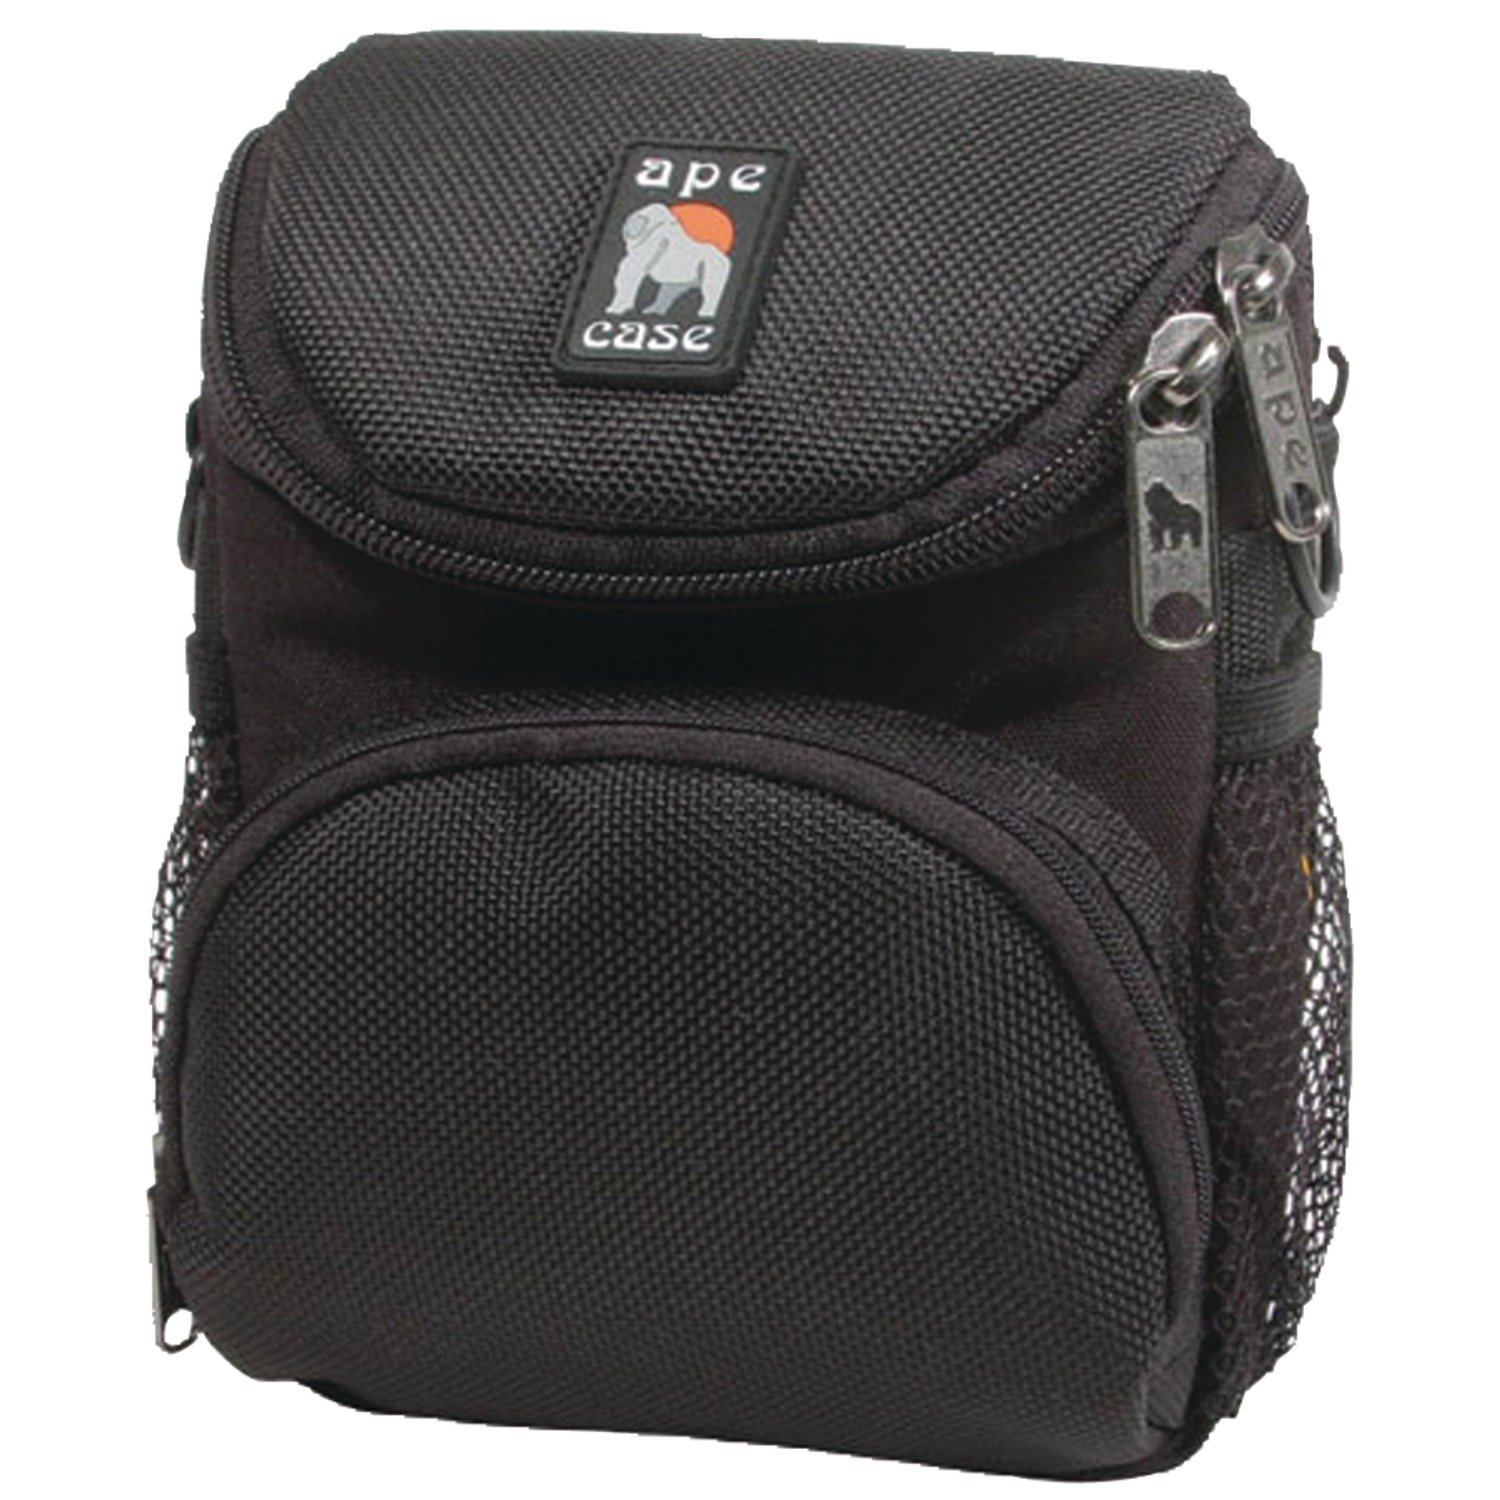 Ape Case AC220 Camera Case and Accessory Bag (Black)